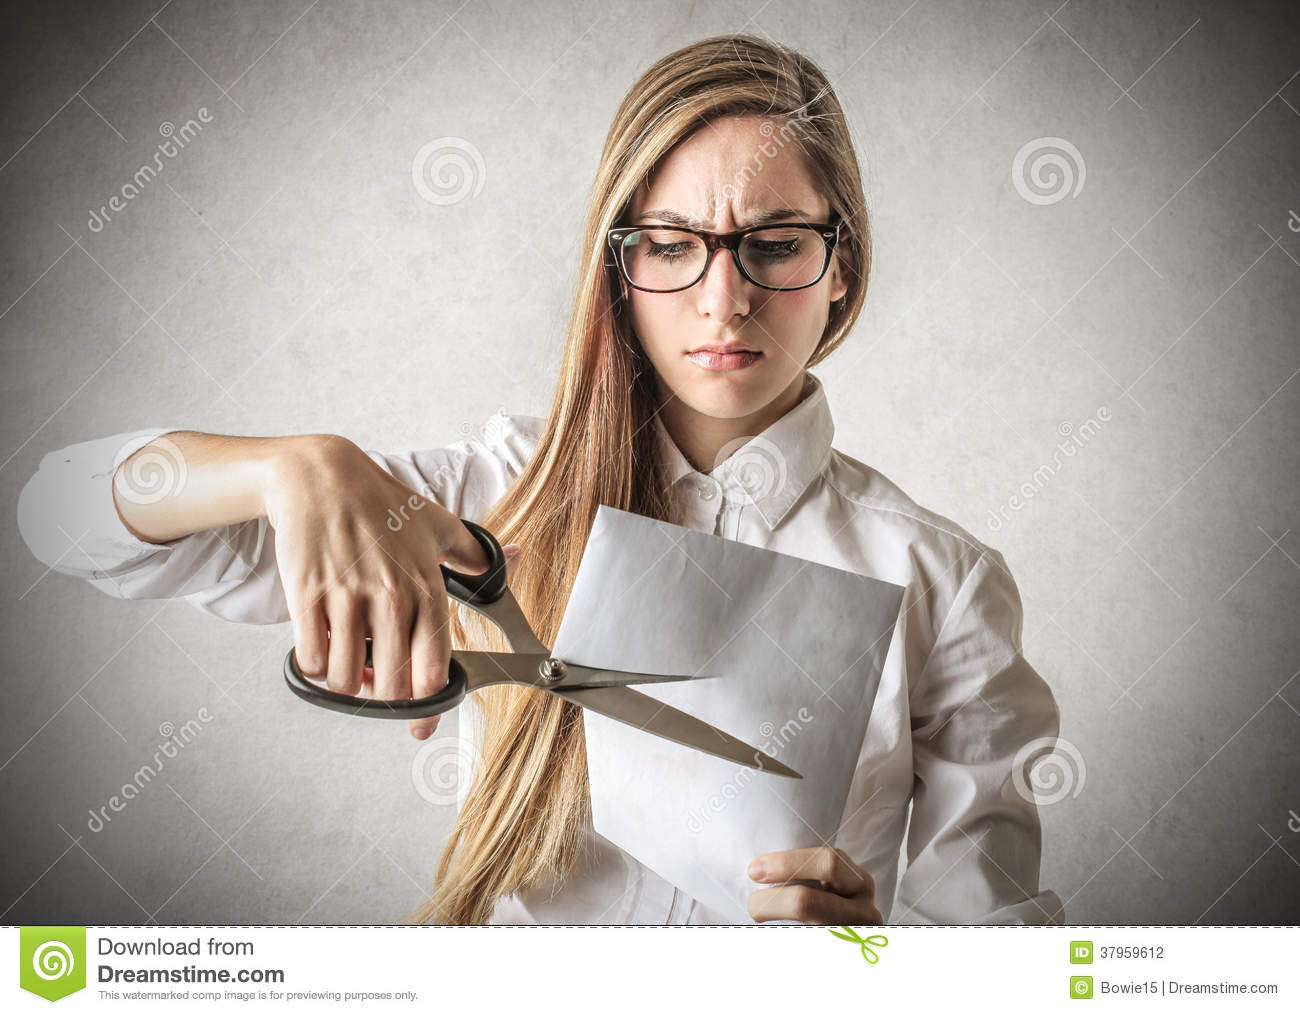 Cutting A Piece Of Paper : Woman cutting a piece of paper stock photo image